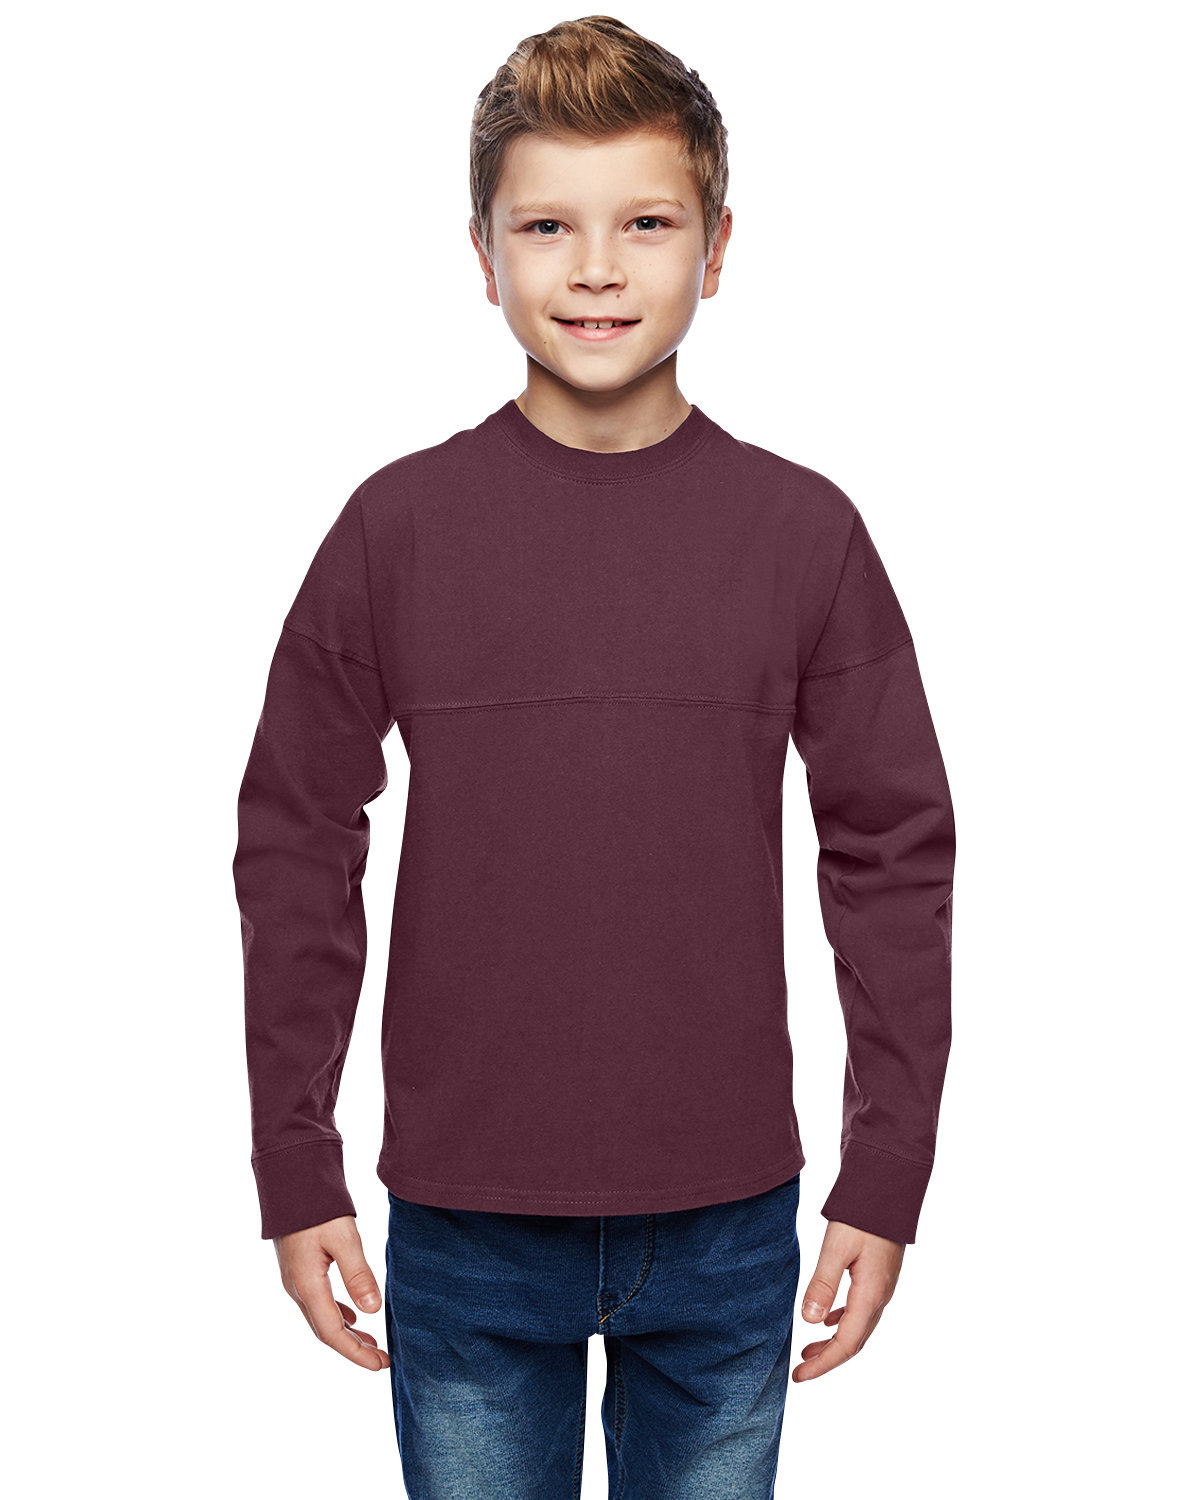 J America Youth Game Day Jersey MAROON